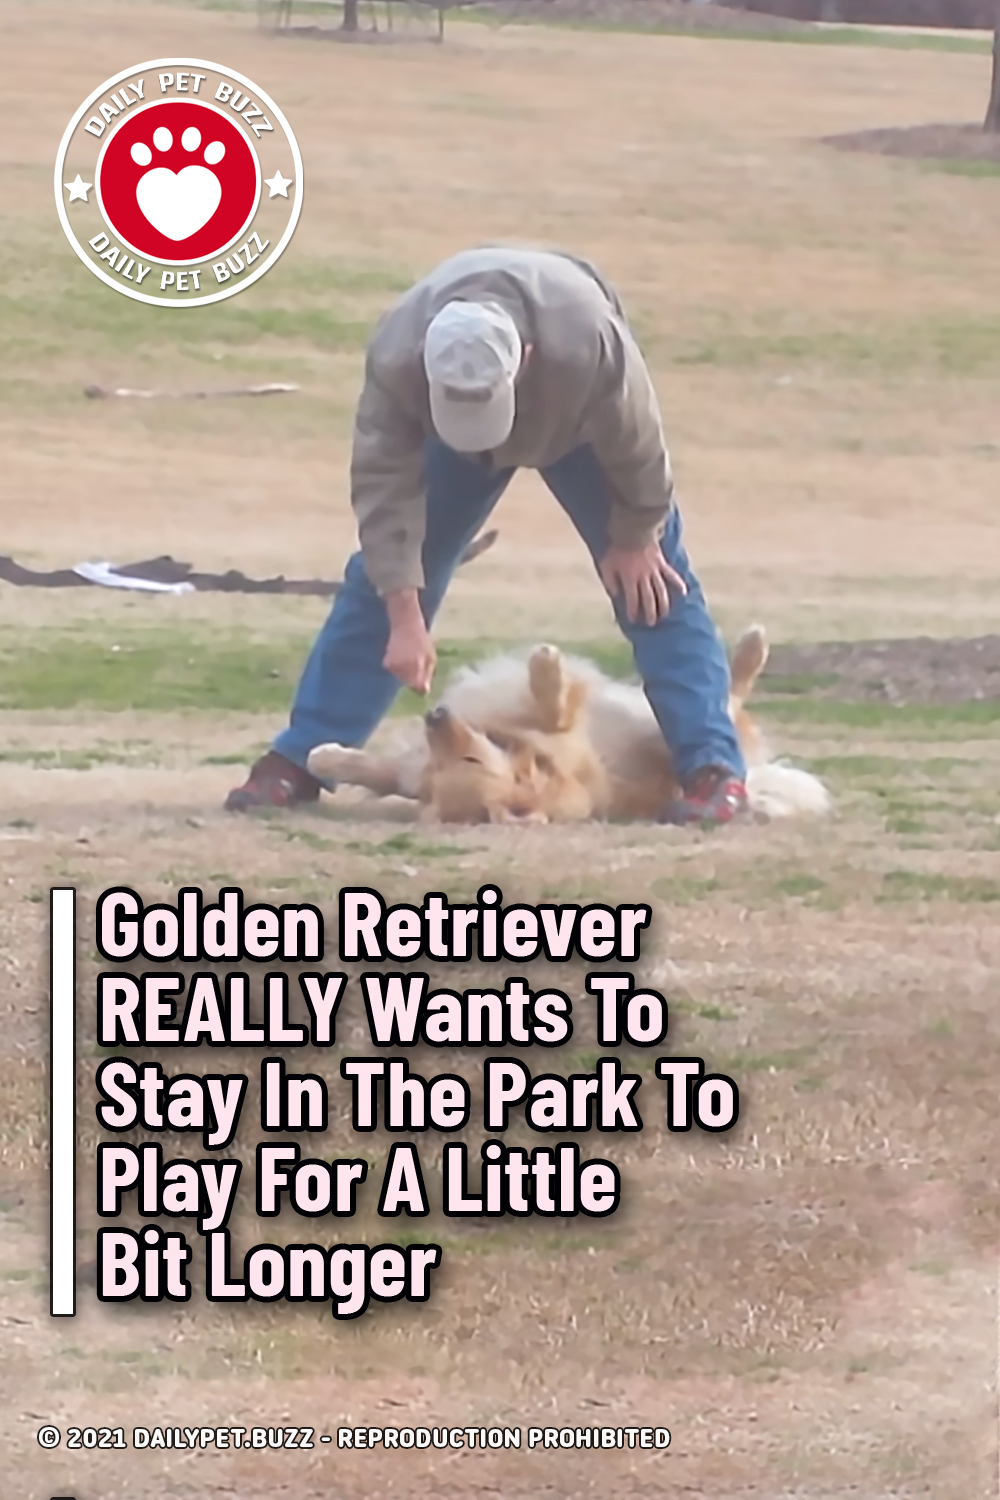 Golden Retriever REALLY Wants To Stay In The Park To Play For A Little Bit Longer